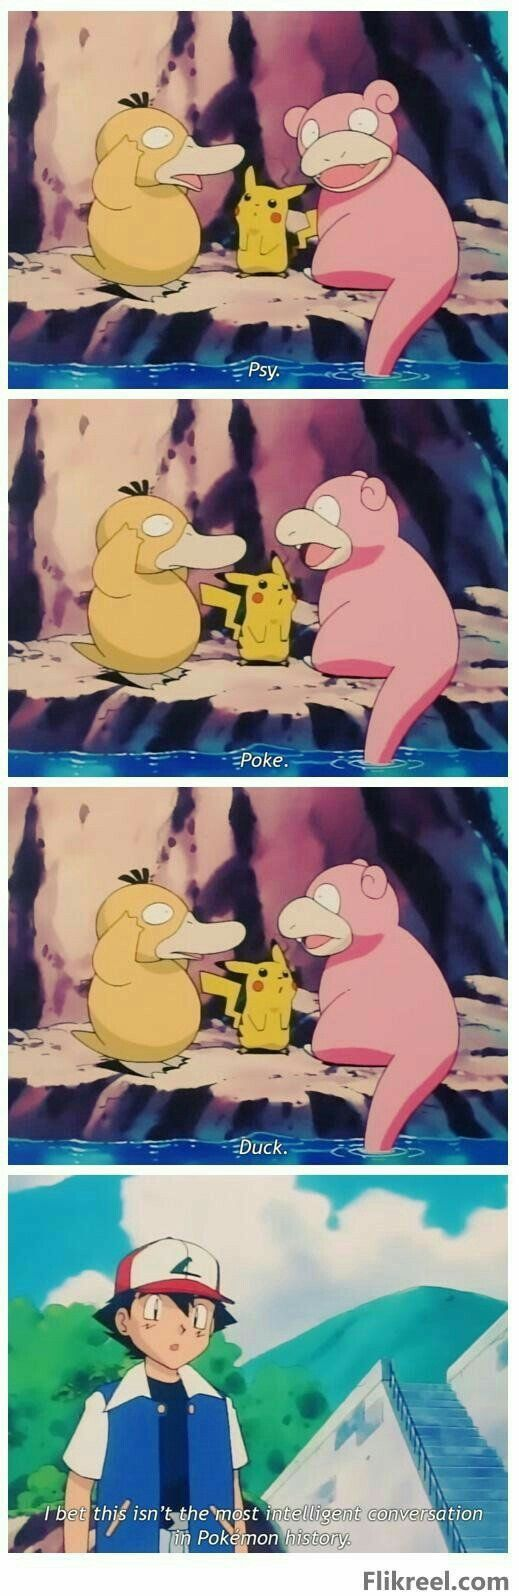 Psyduck, Slowpoke, Pikachu, Ash, funny, text, quote, comic, I bet this isn't the most intelligent conversation in Pokémon history; Pokémon